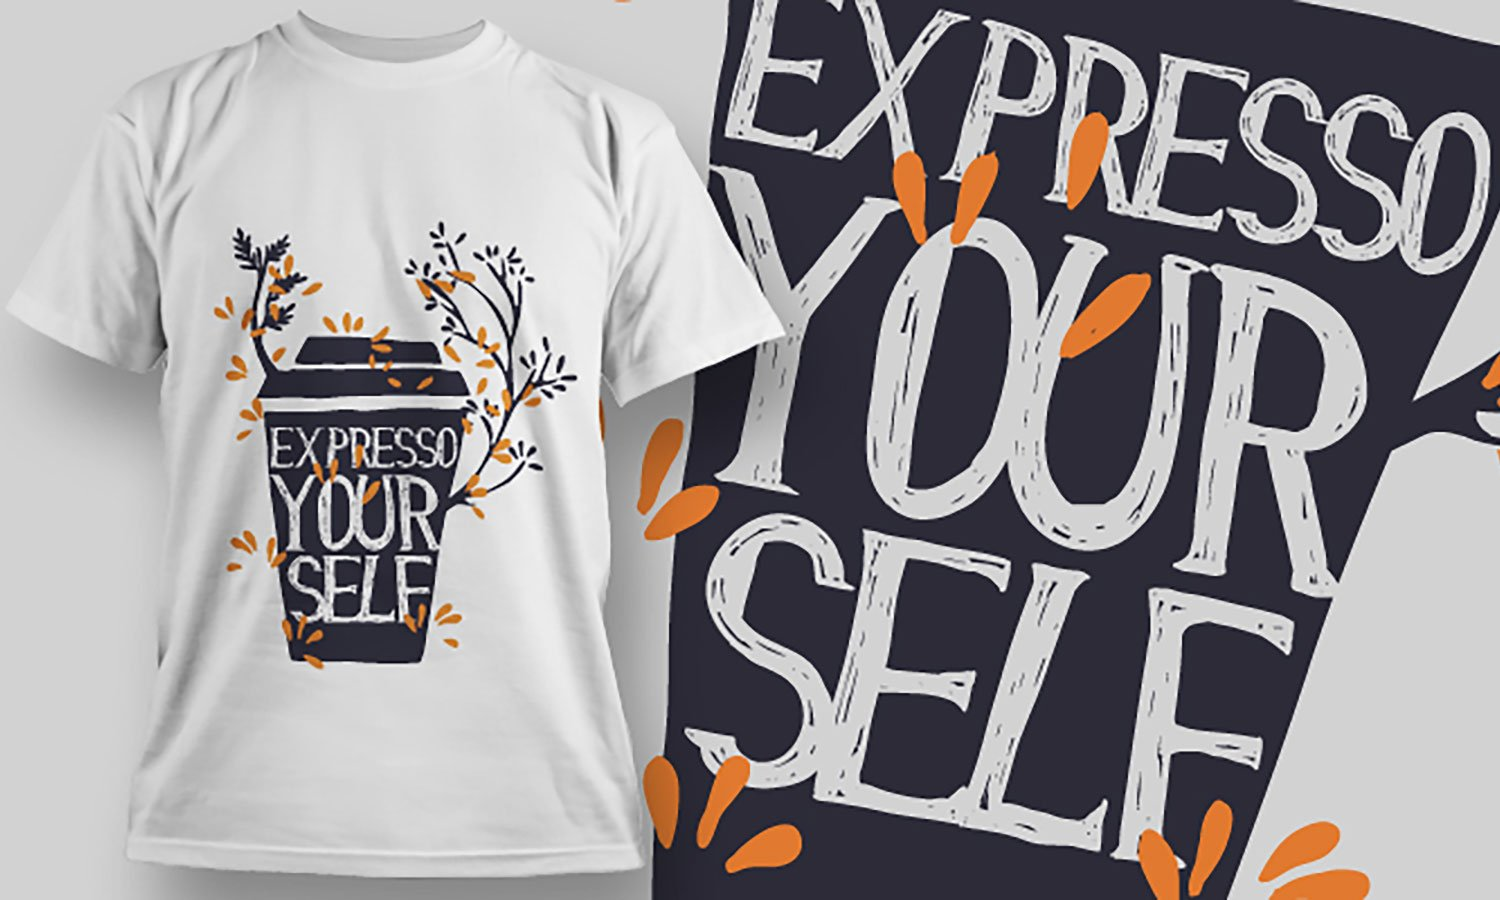 Expresso - Printed T-Shirt for Men, Women and Kids - TS269